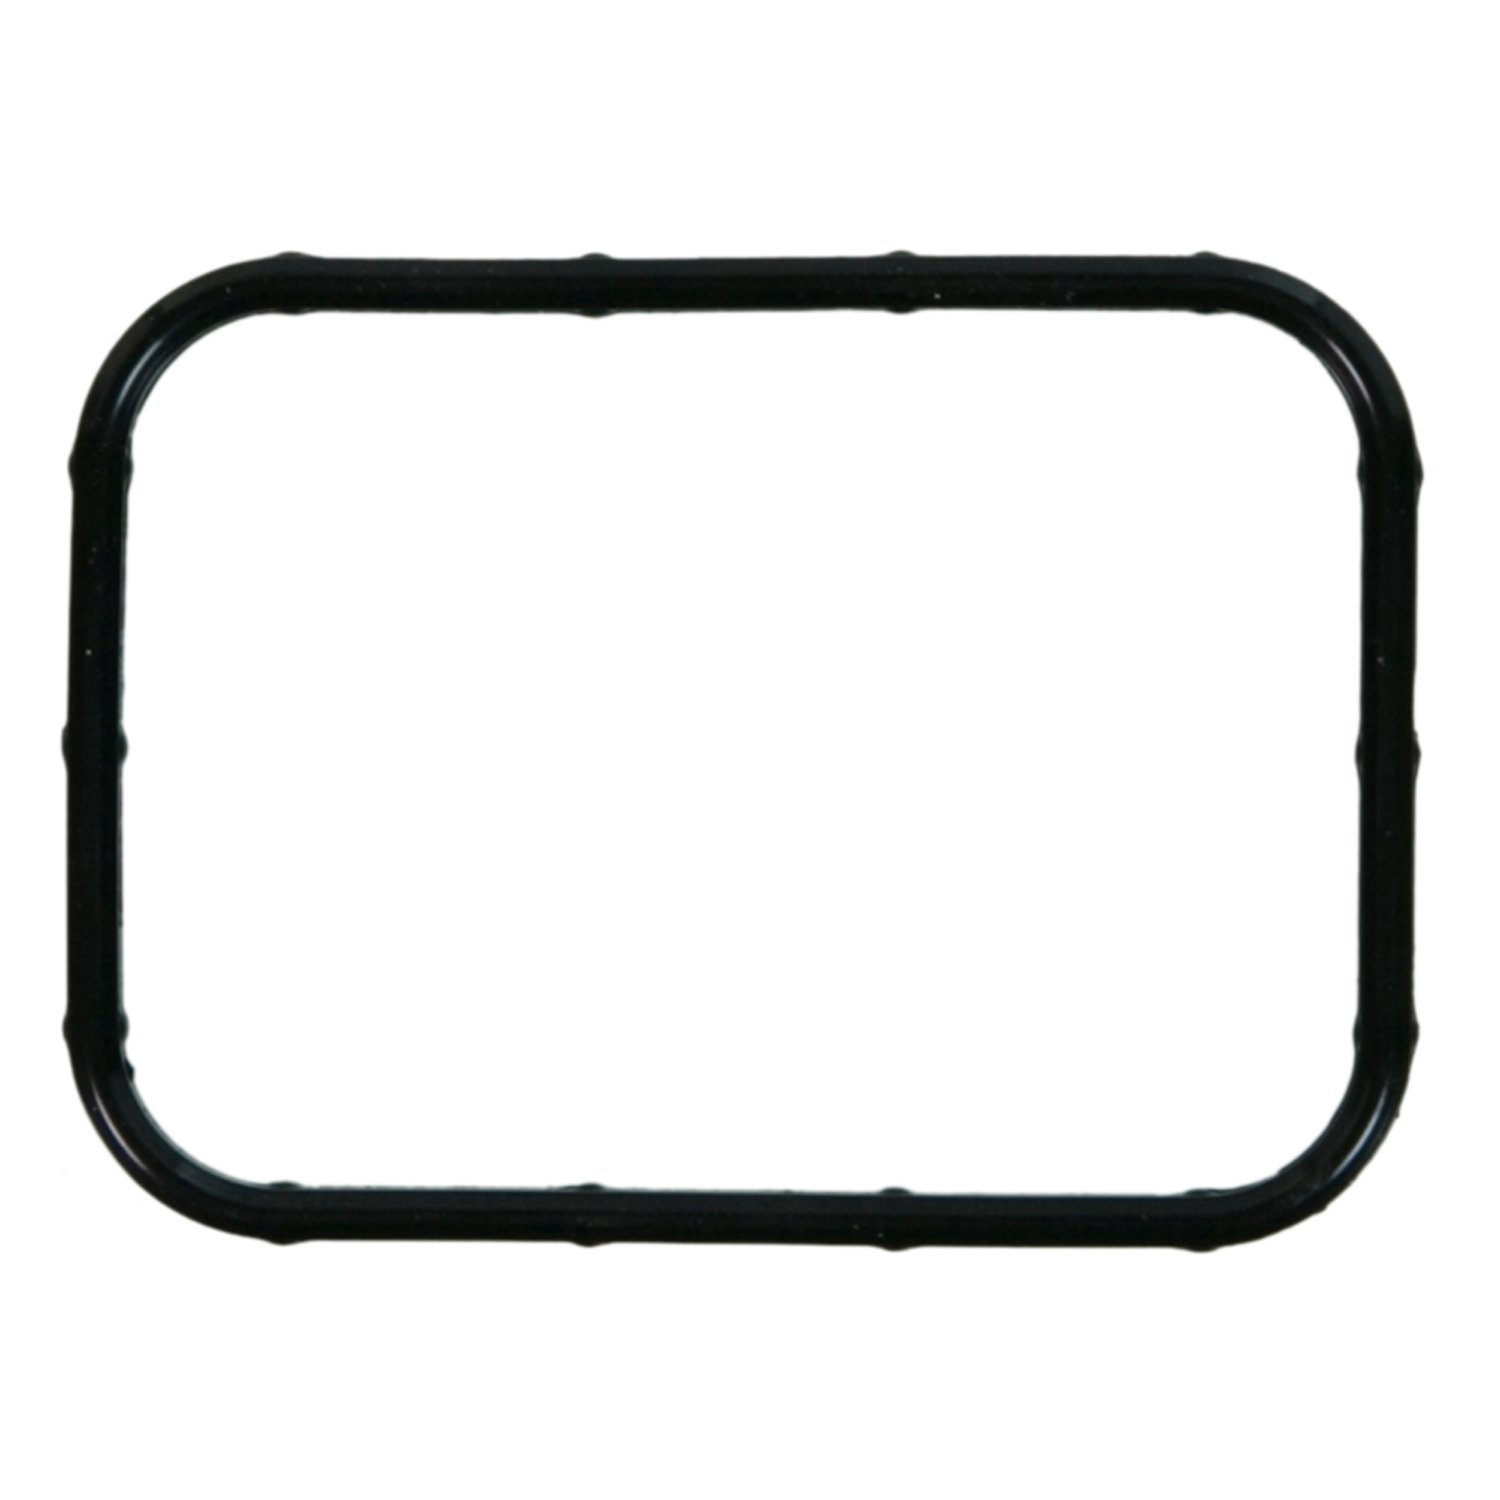 hight resolution of 2010 hyundai santa fe engine coolant outlet gasket fp 36033